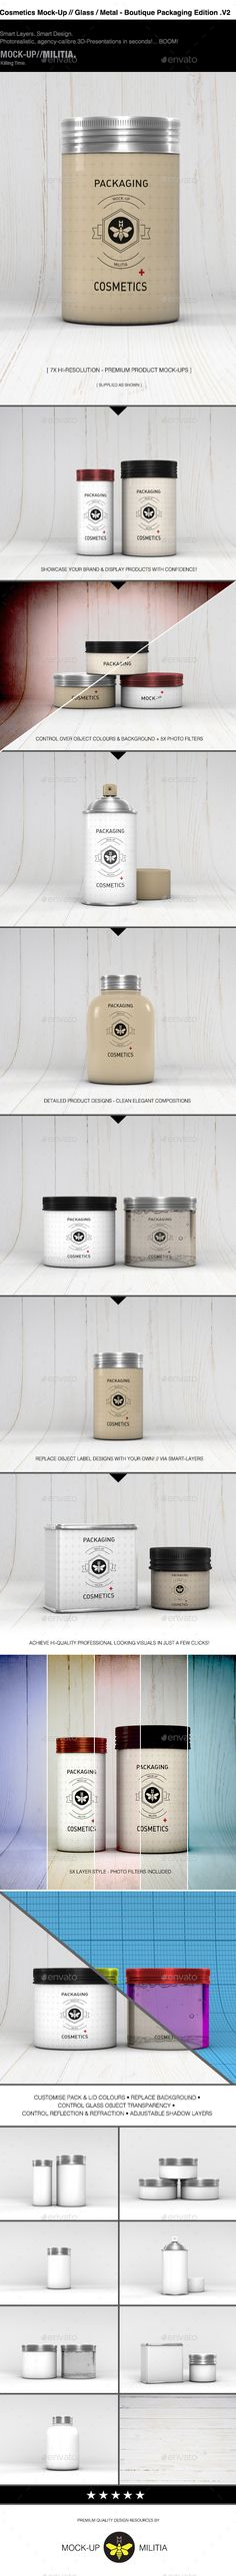 Cosmetics | Grooming Kit | Toiletries | Mock-Up | 2 - Beauty Packaging